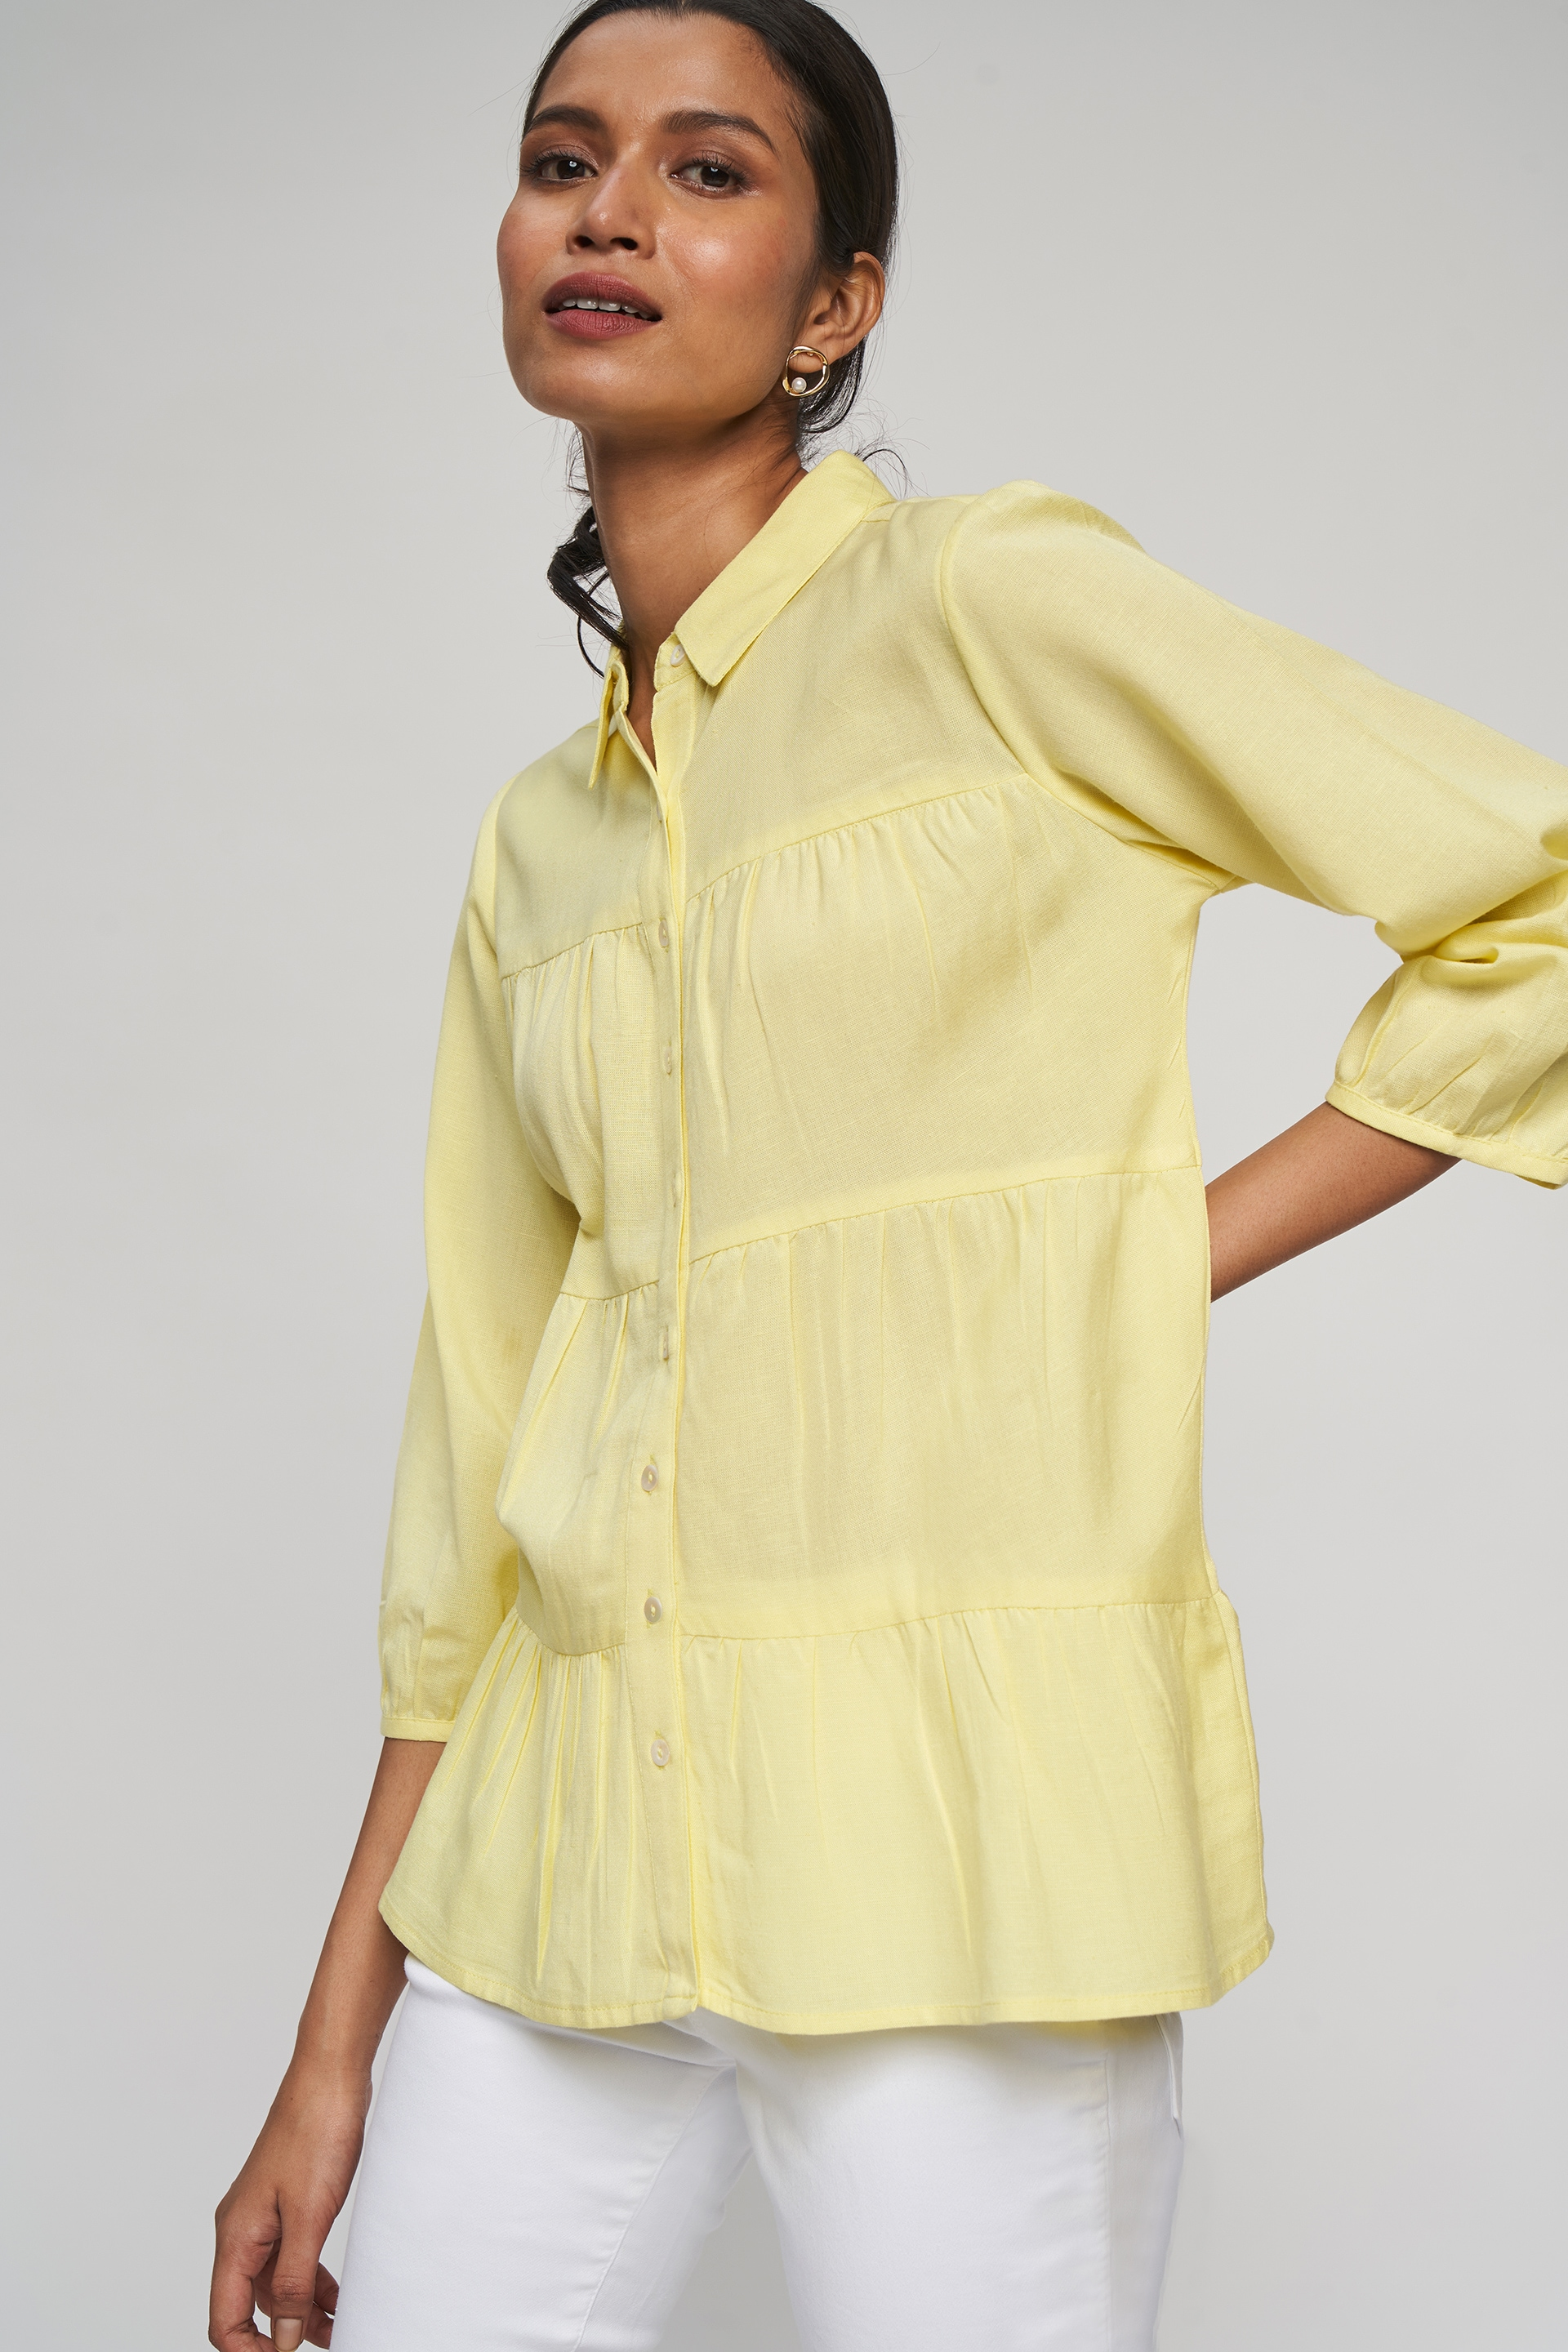 AND   Lime Solid Fit And Flare Top